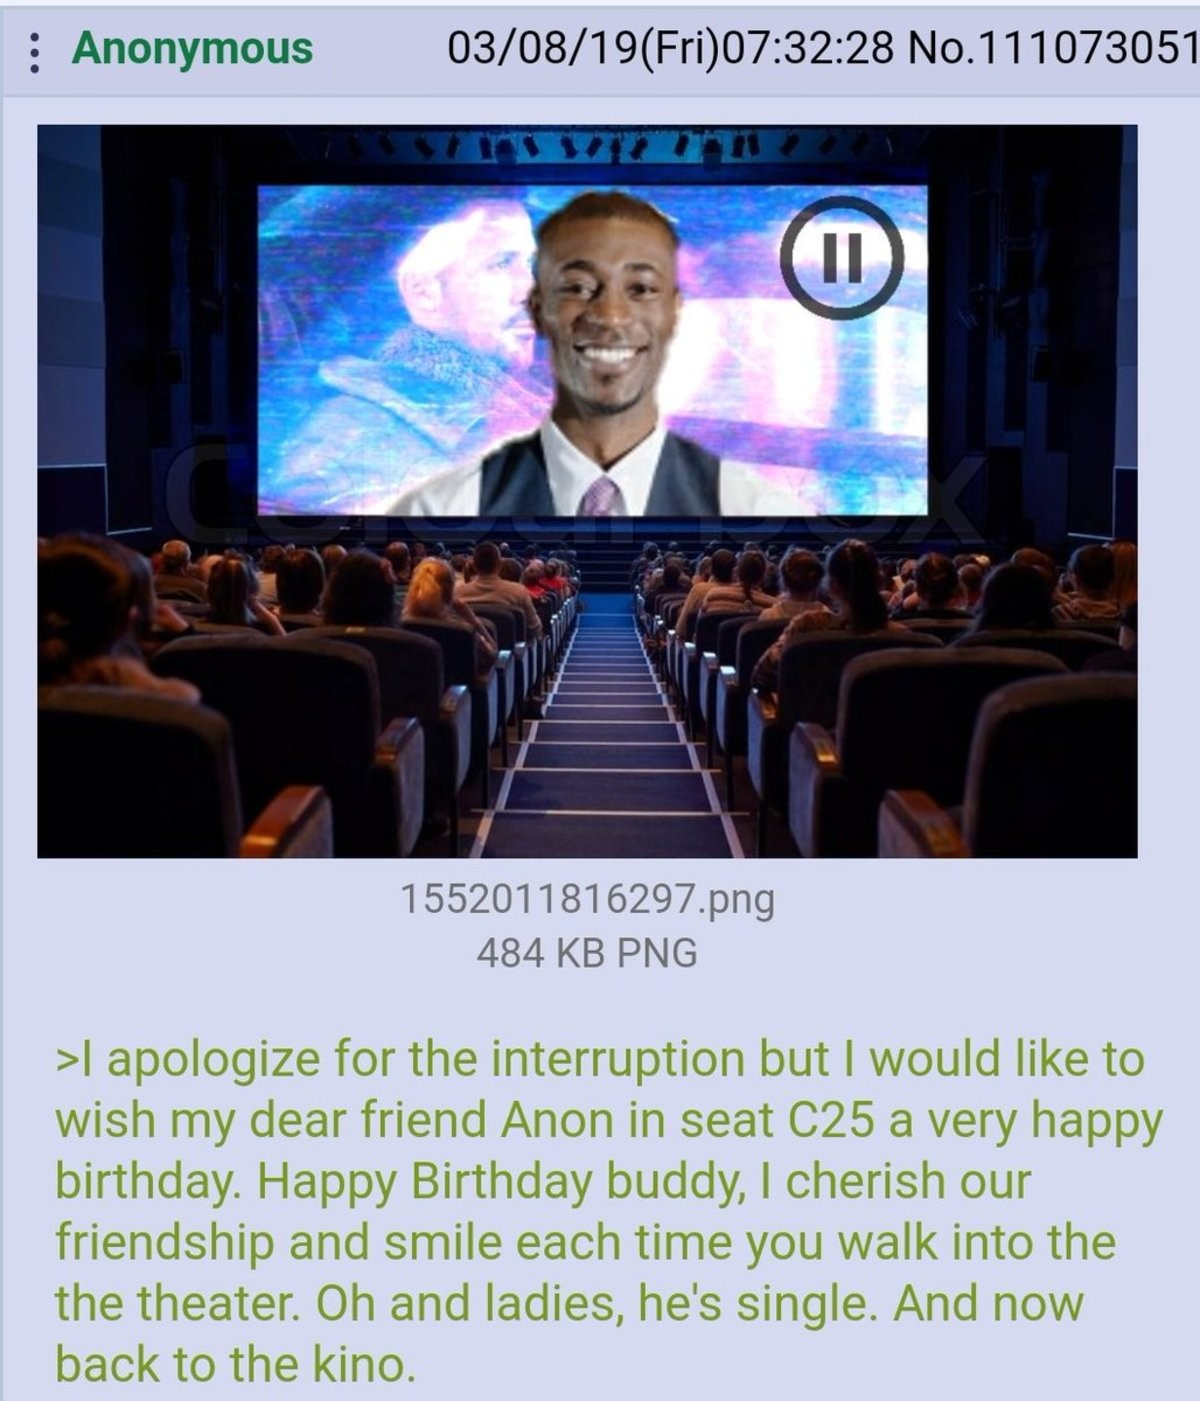 Thanks Robert :). .. Today is my birthday. I'll pretend this was for me.Comment edited at .